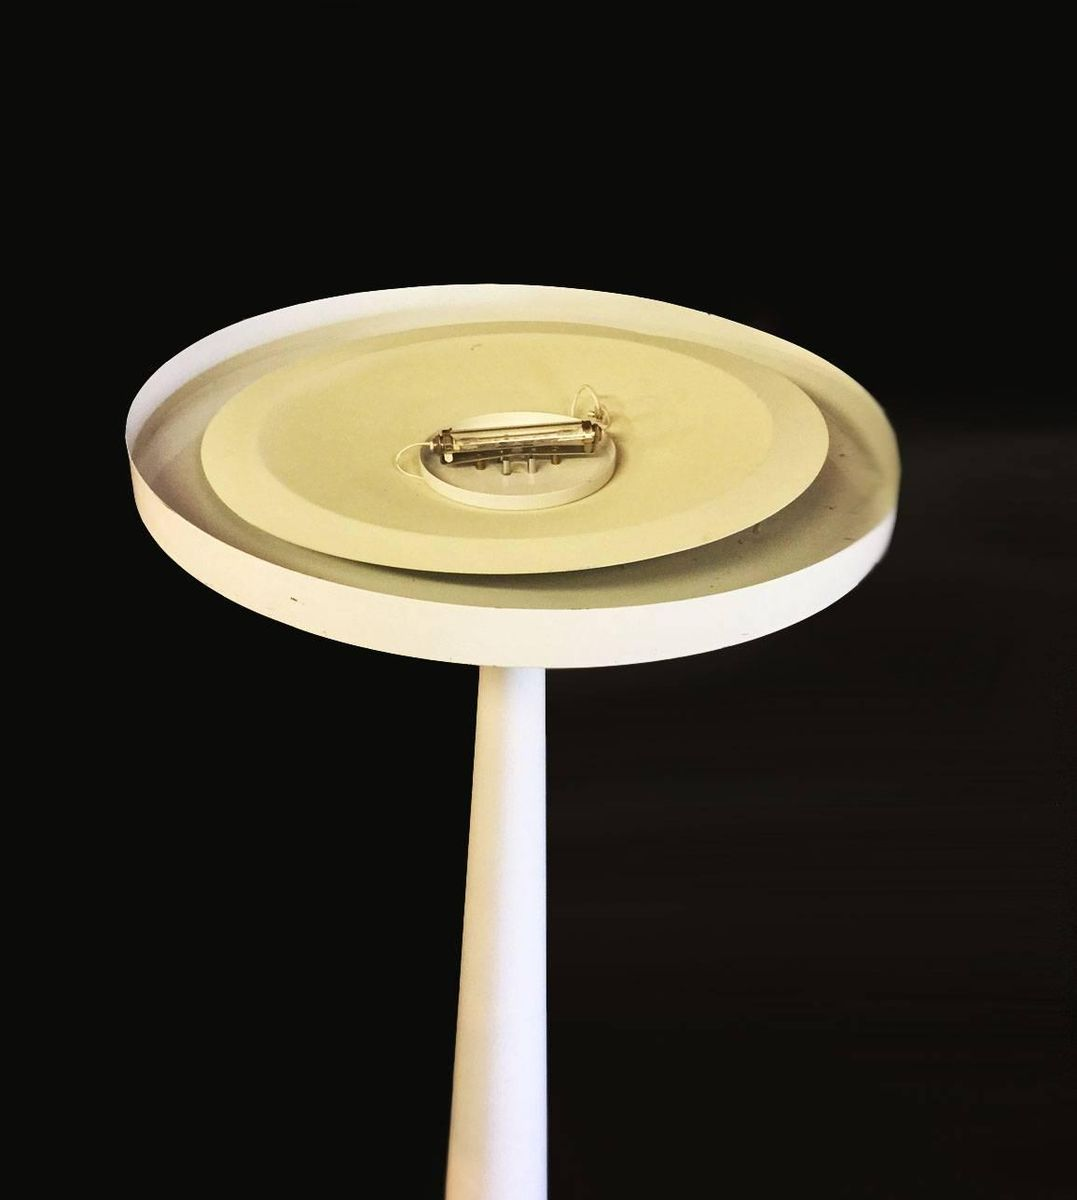 French minimalist white metal floor lamp 1980 for sale at for Floor in french translation